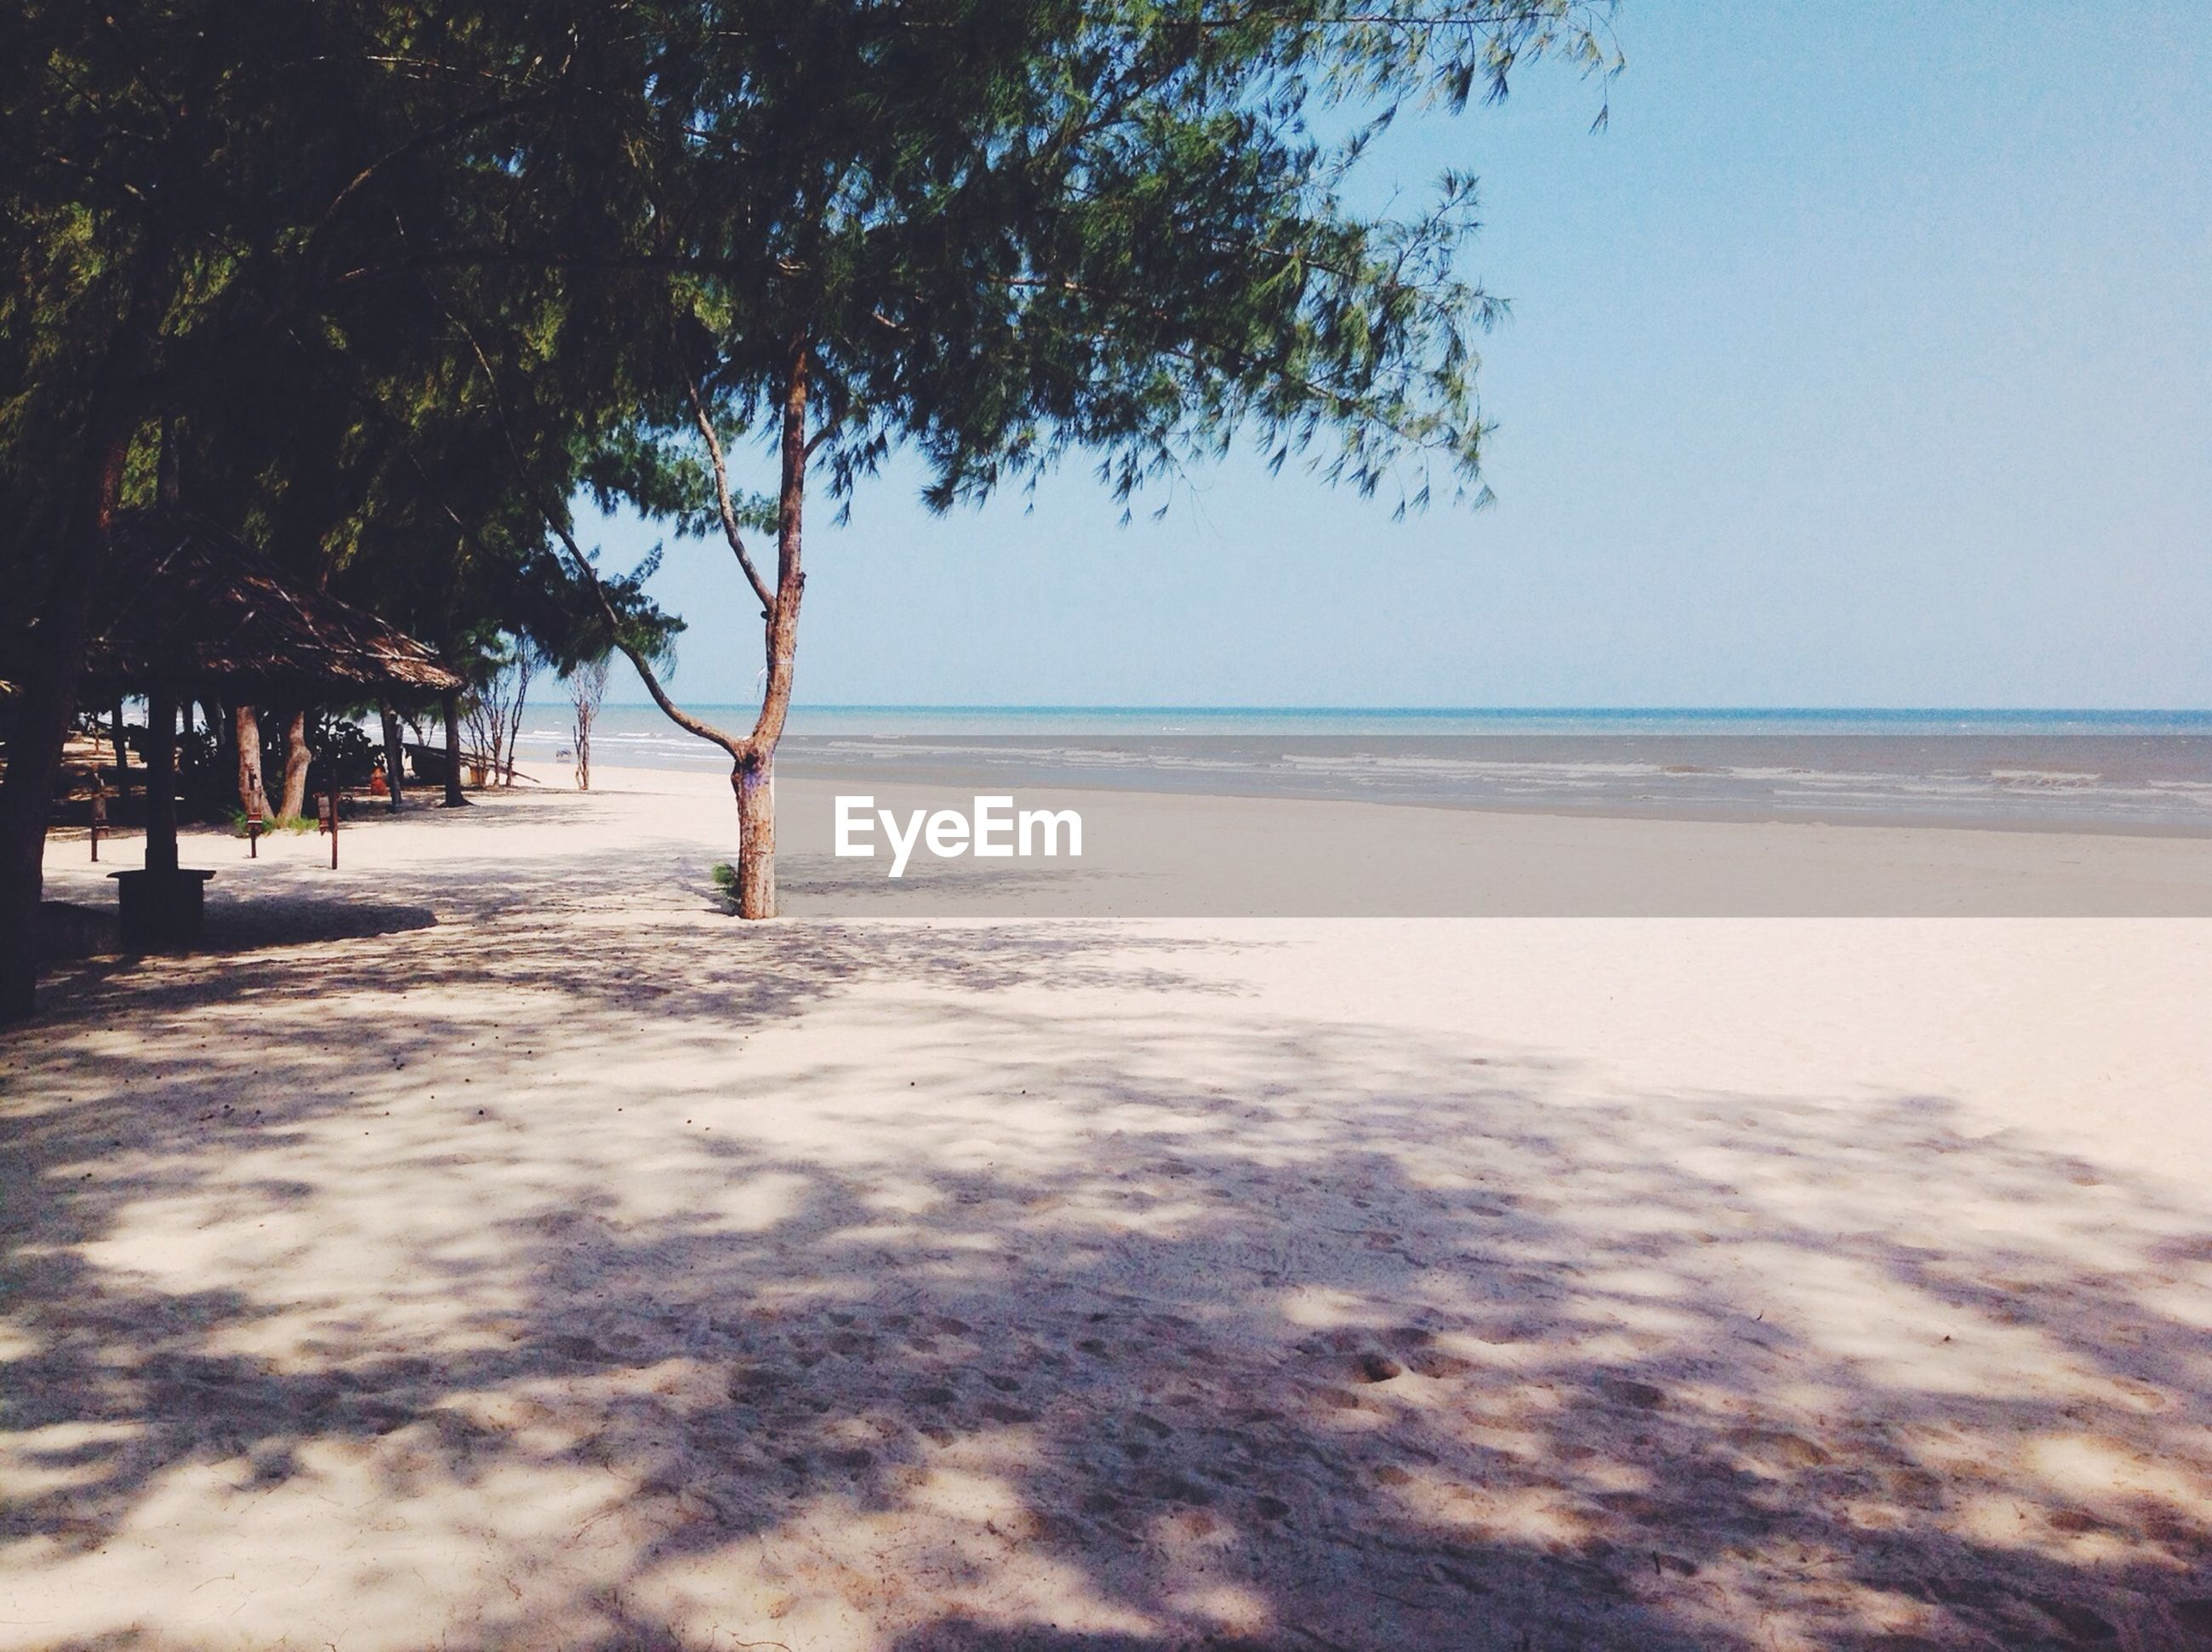 sea, horizon over water, beach, water, tranquil scene, shore, tranquility, scenics, sand, beauty in nature, tree, sky, nature, idyllic, sunlight, clear sky, remote, outdoors, day, wave